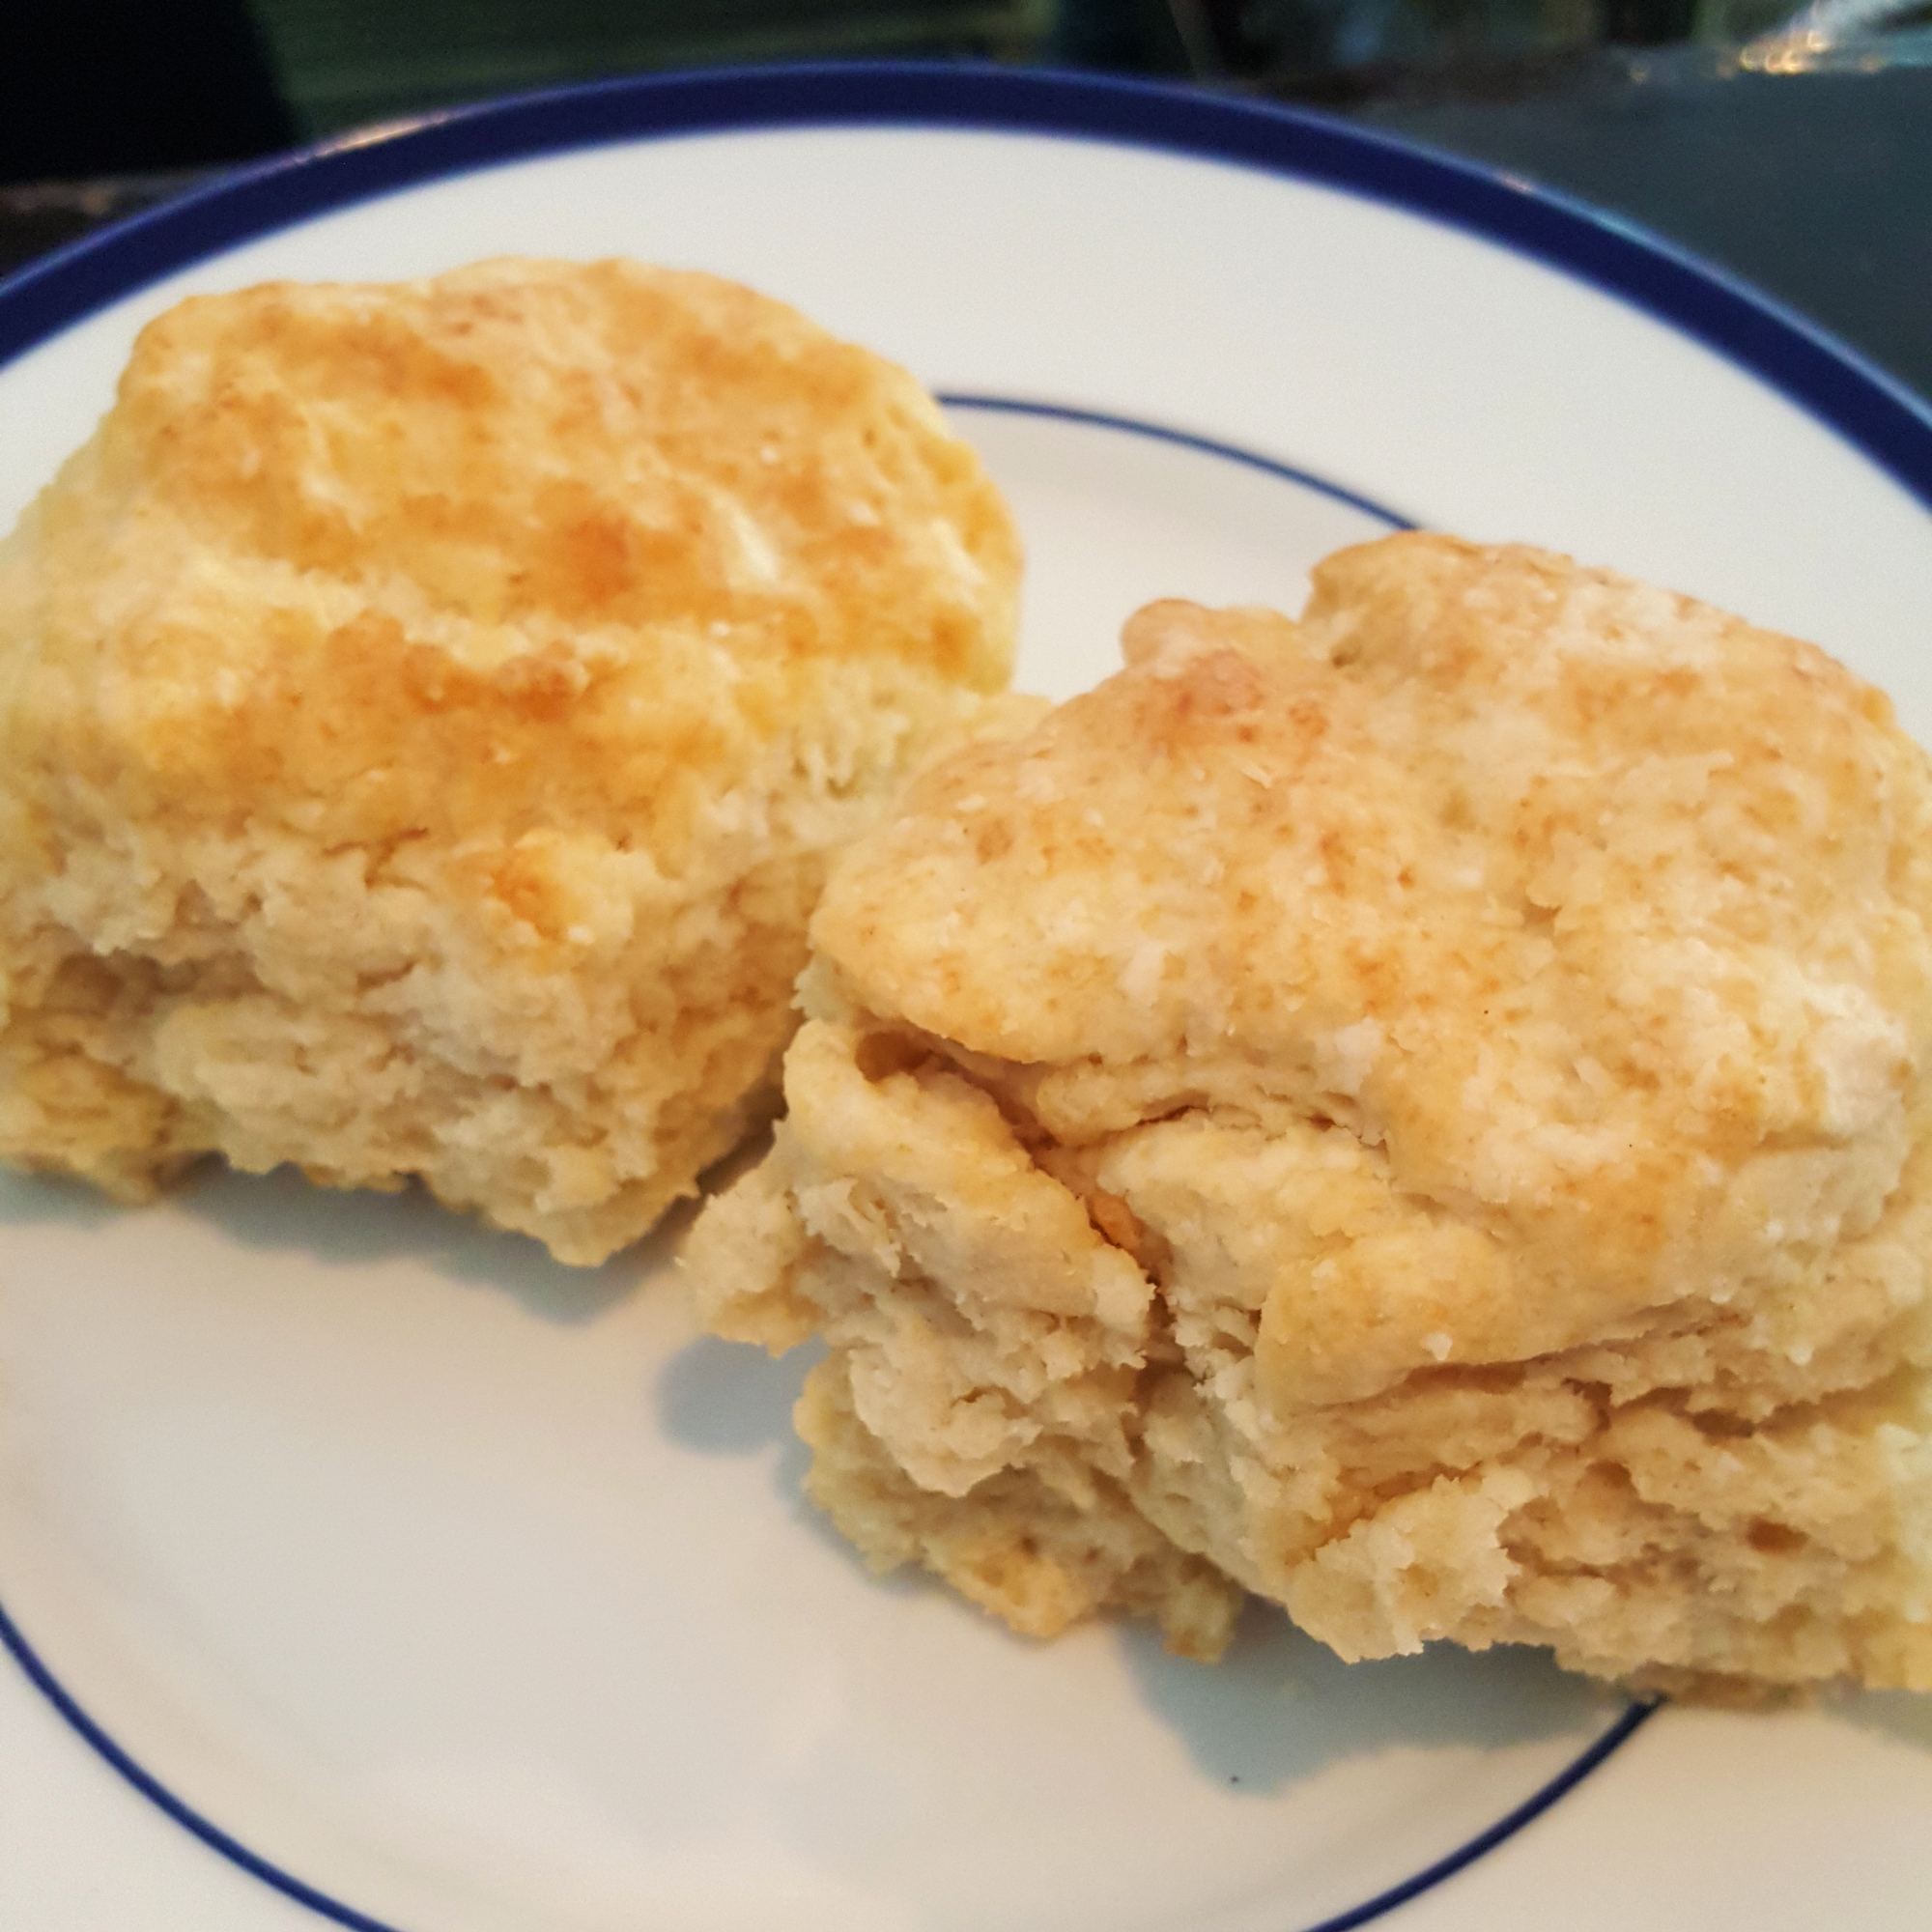 CHEFDISPATCH1215-XL-jimmy-bannos-biscuits.jpg